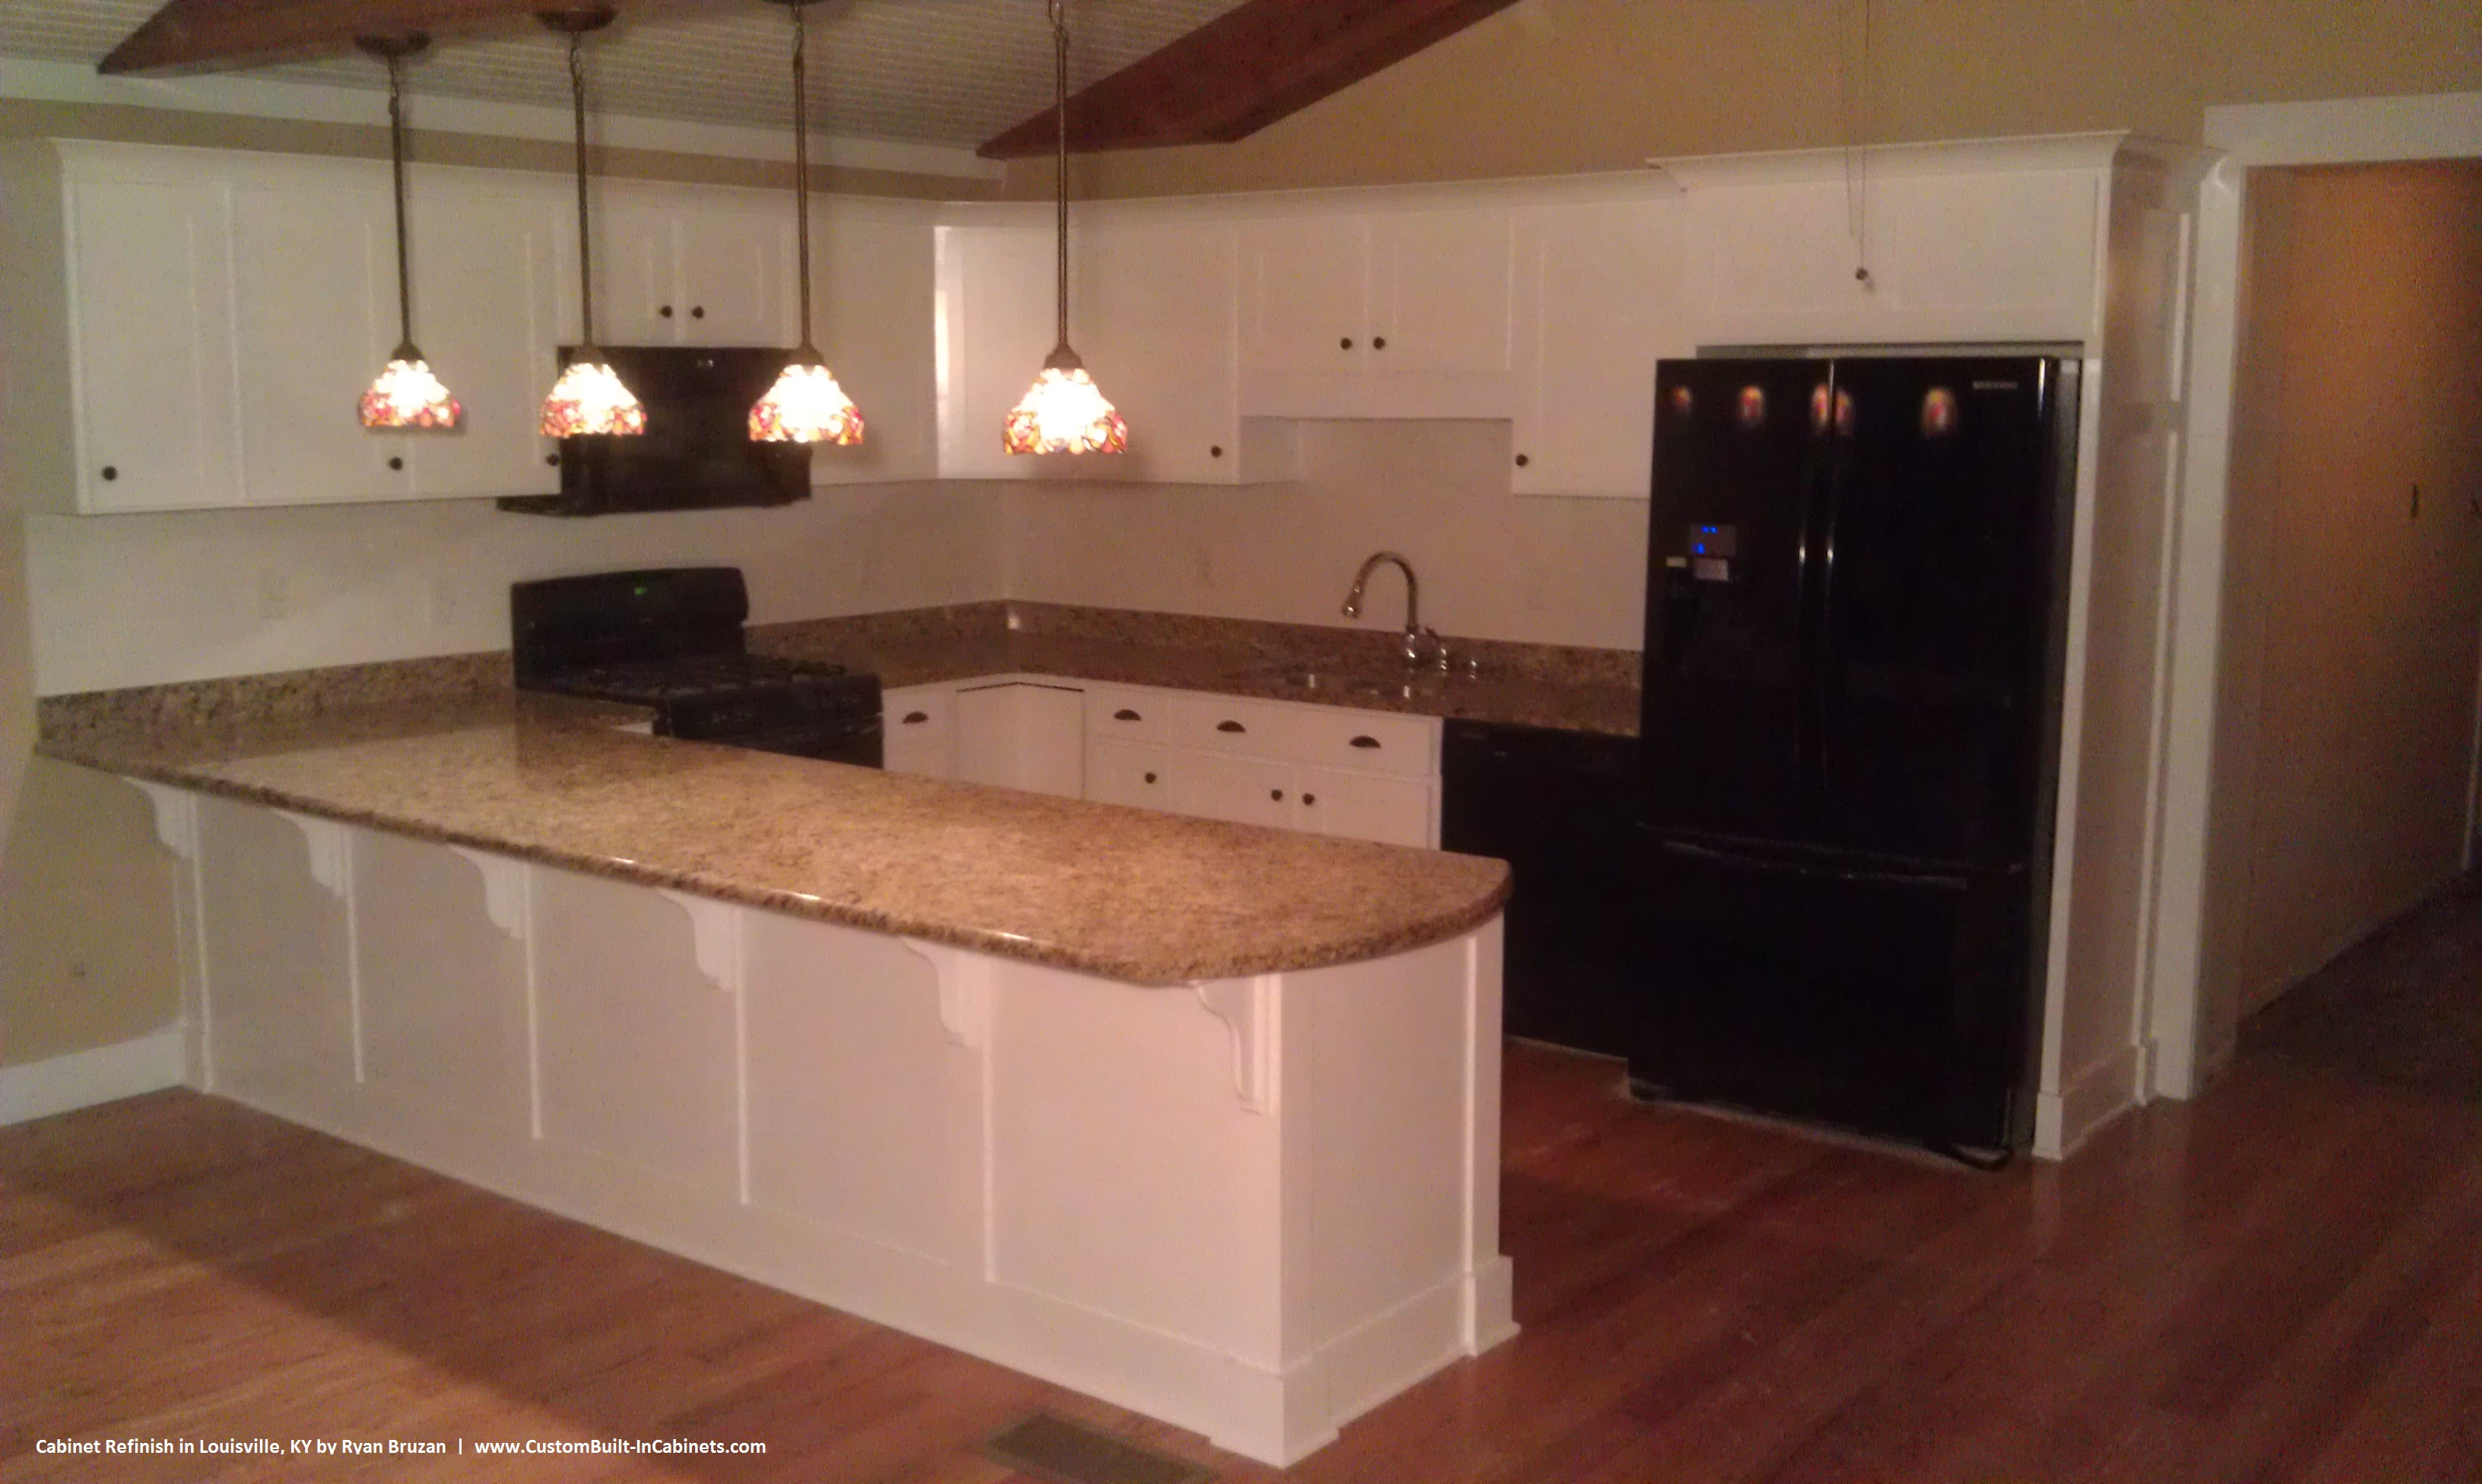 Refinished cabinets with white lacquer in Louisville, KY